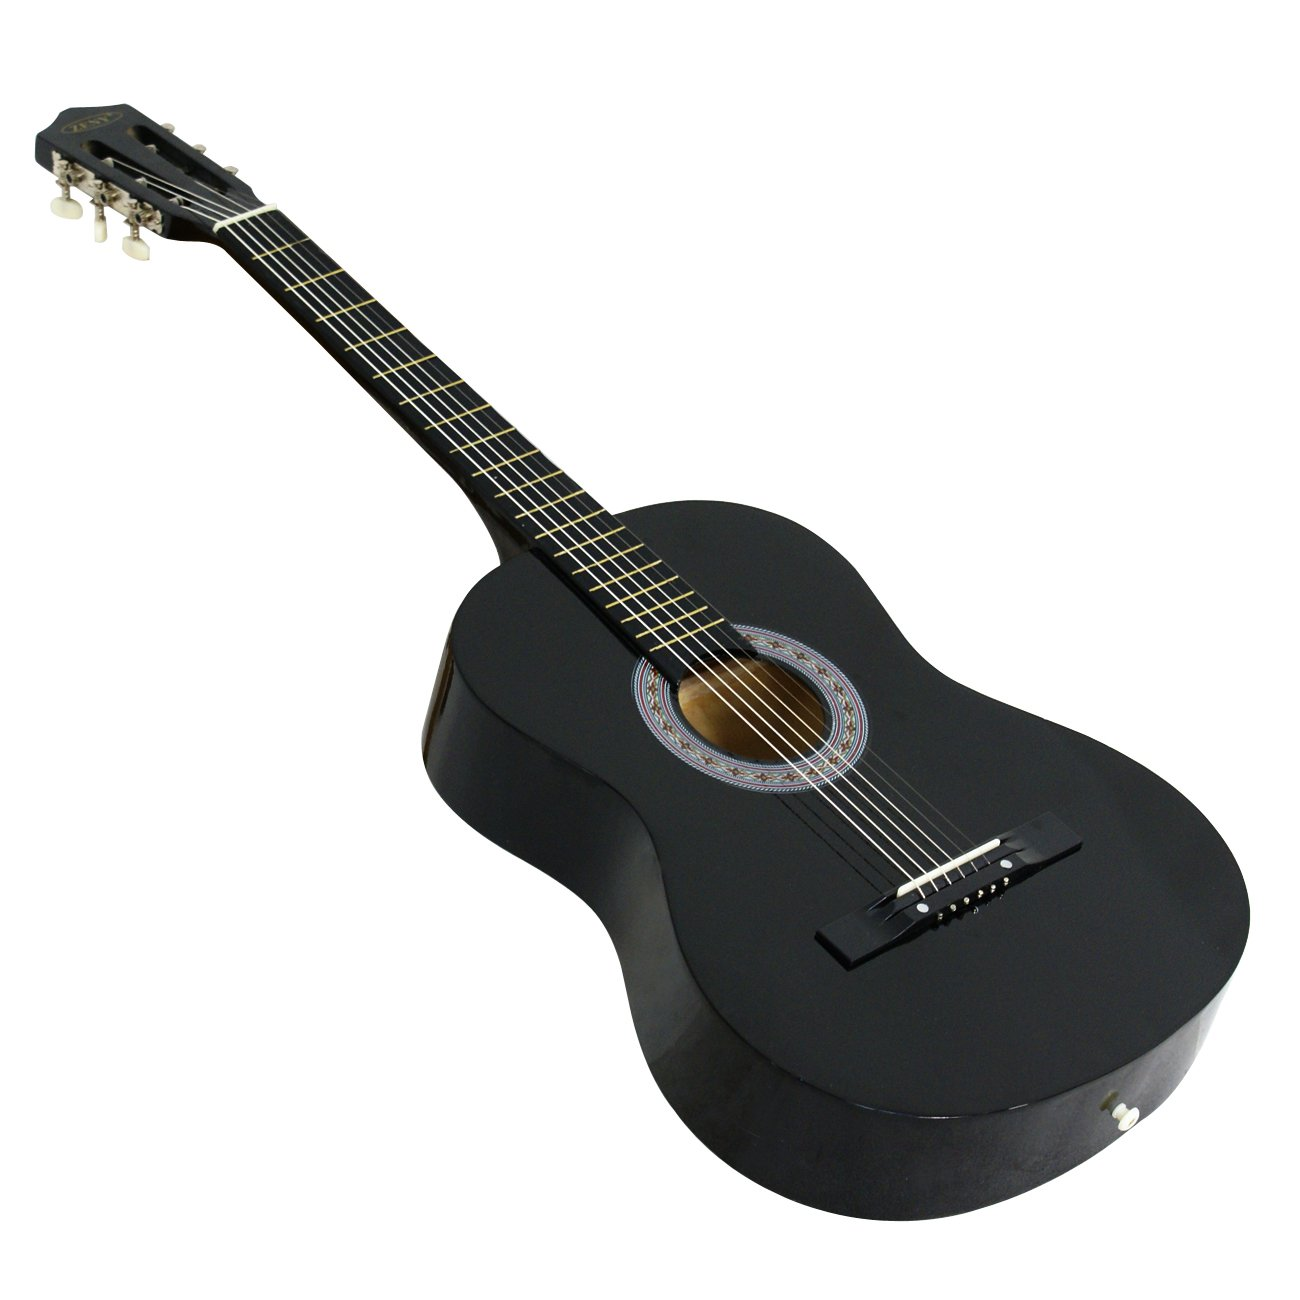 ZENY Beginners 38'' Acoustic Guitar Package Kit for Right-handed Starters Kids Music Lovers w/Case, Strap, Digital E-Tuner, and Pick, Black by ZENY (Image #6)